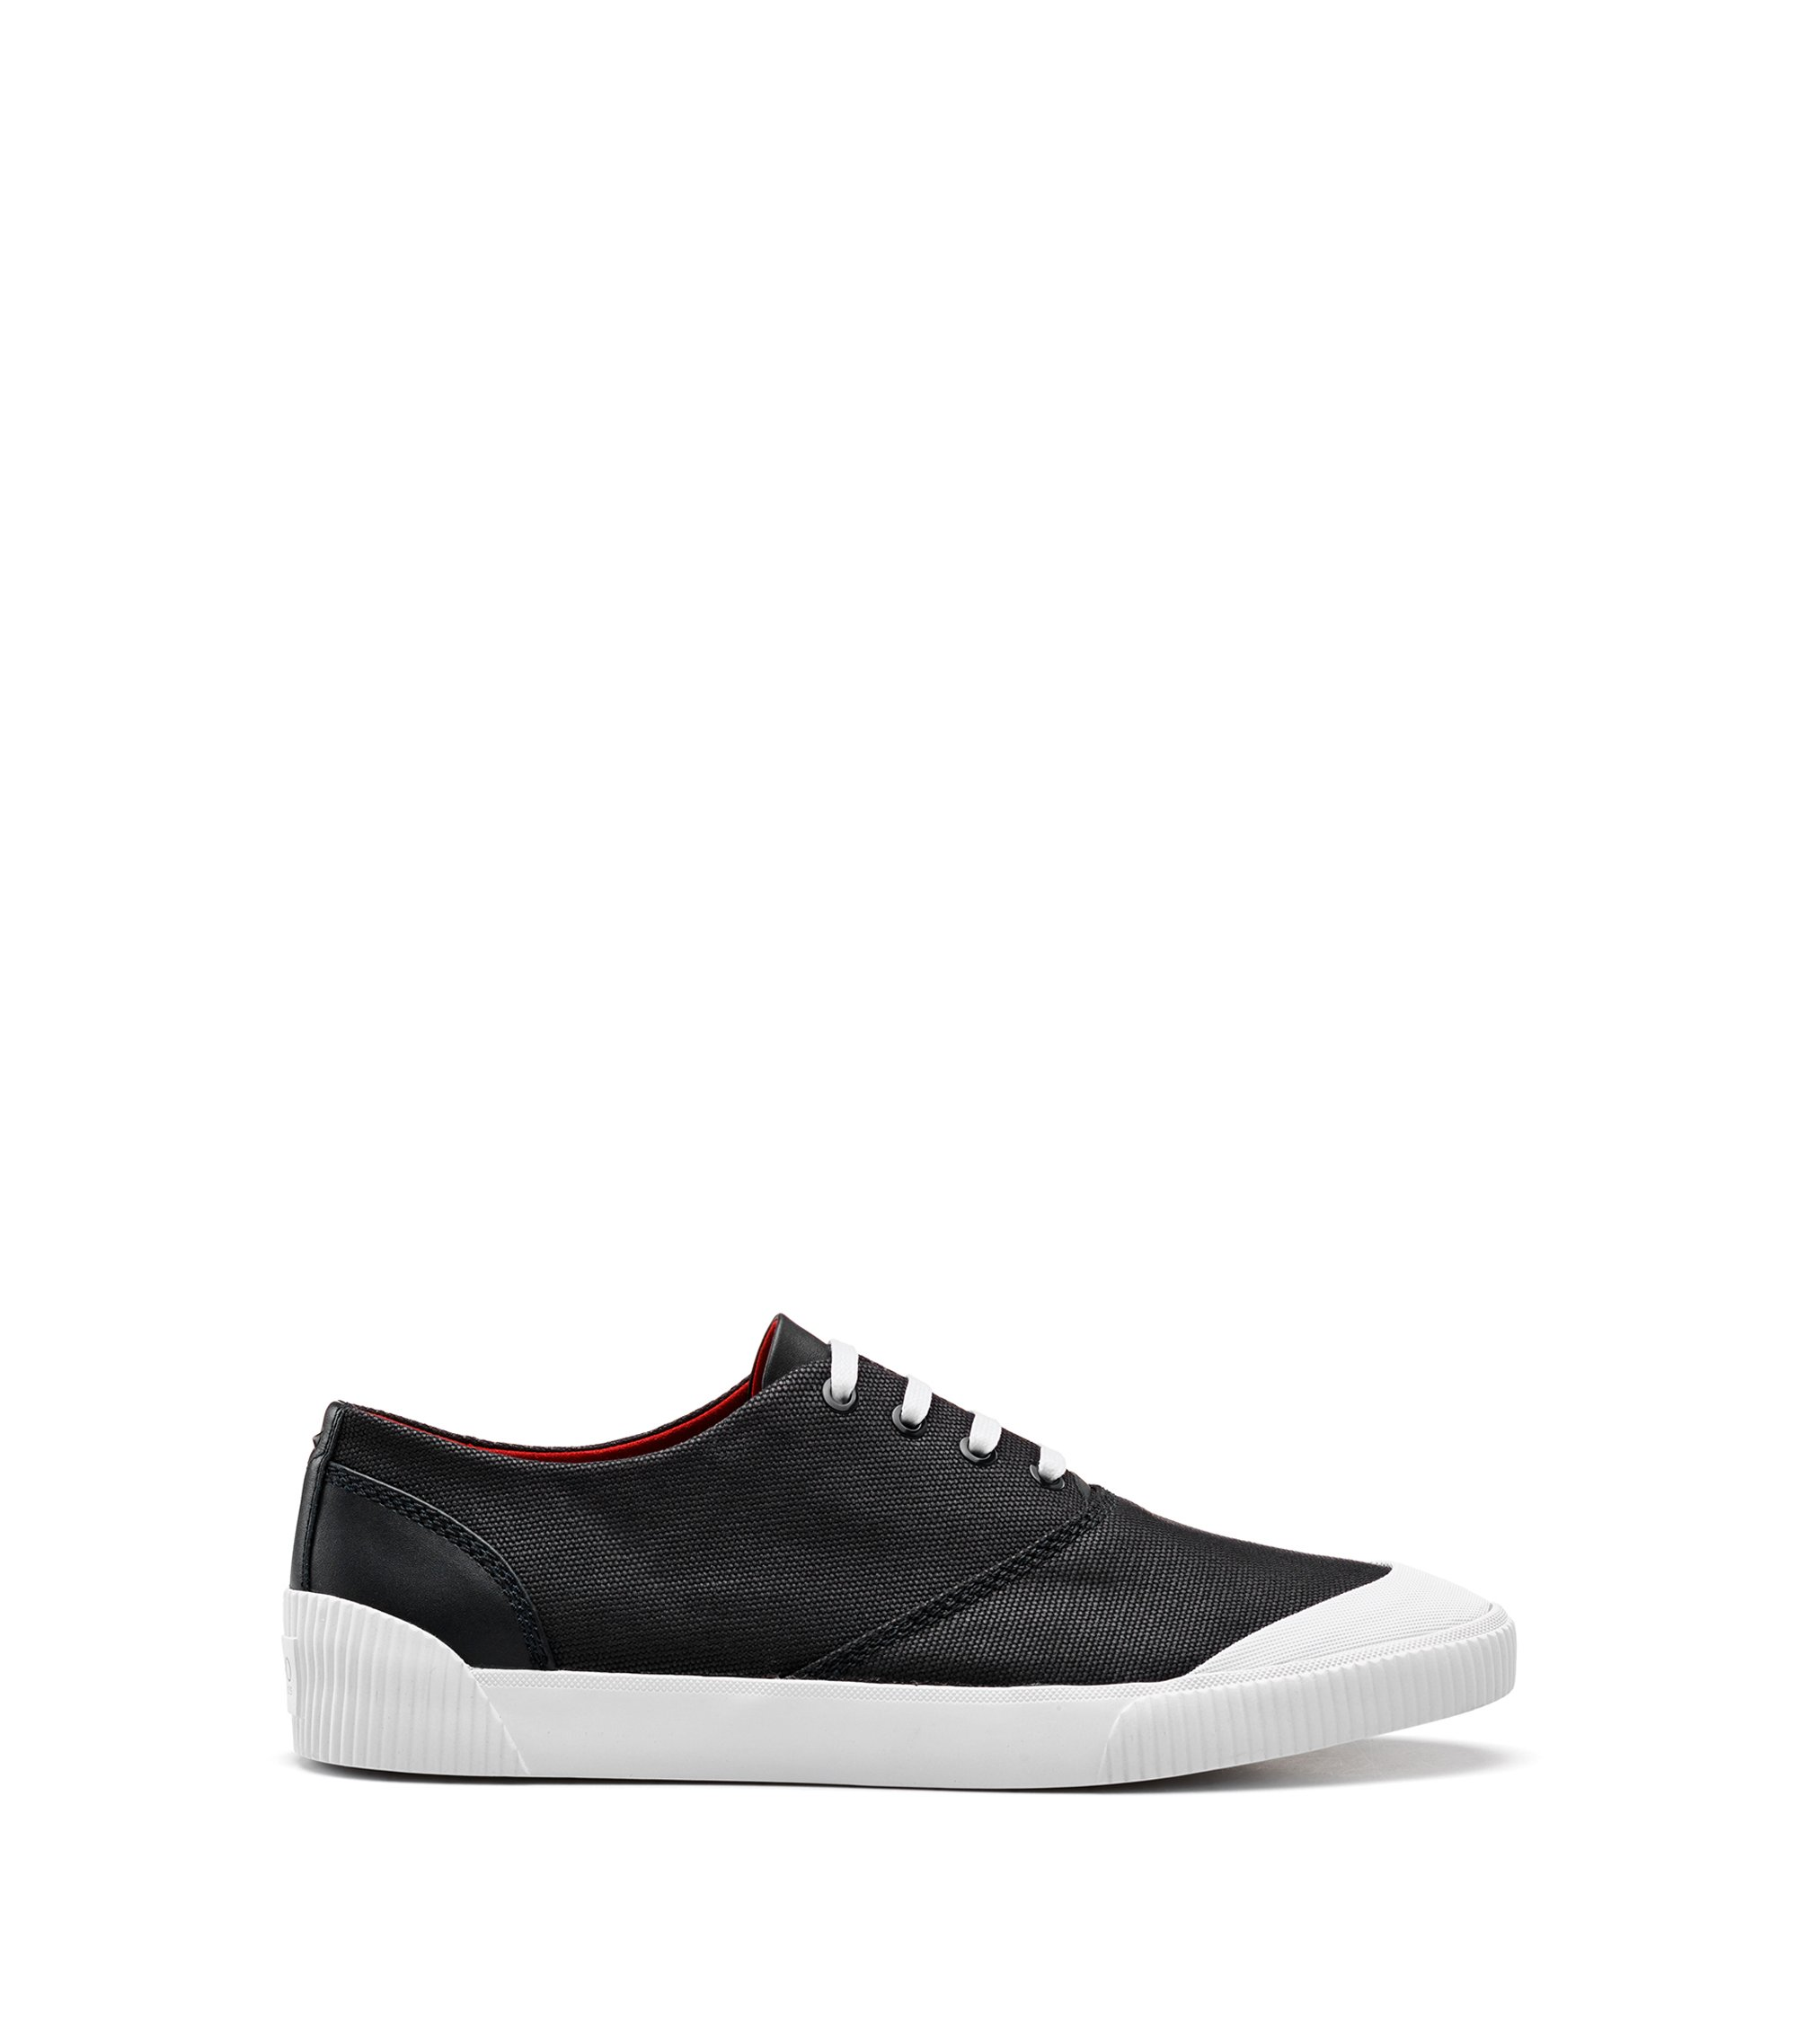 Lace-up tennis shoes in technical fabric, Black